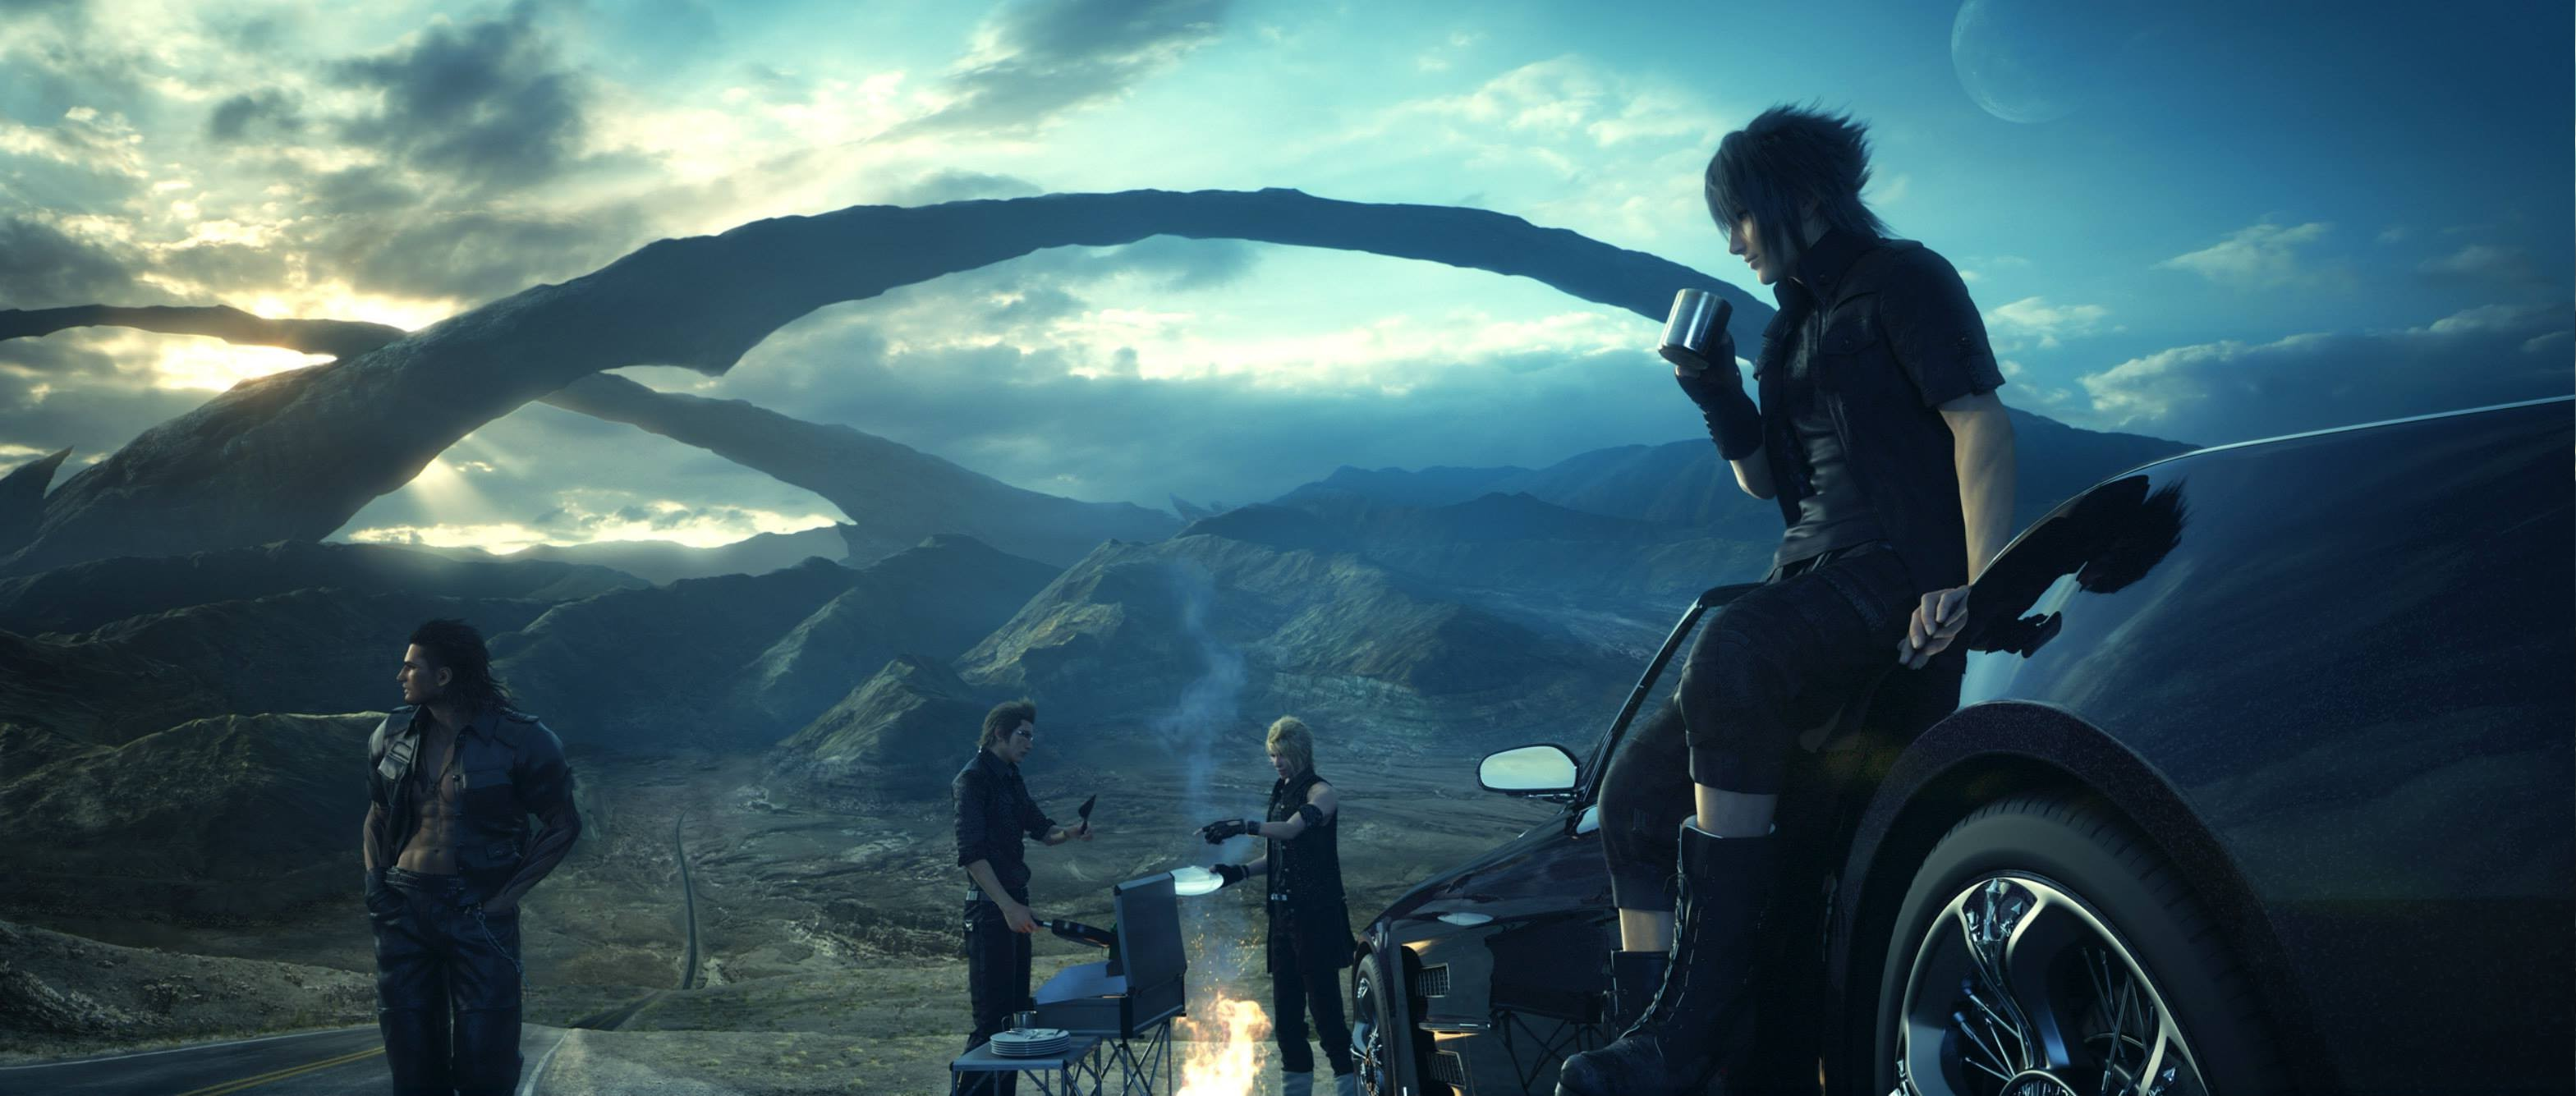 Final Fantasy 15 Noctis Wallpaper High Quality Resolution Is Cool Wallpapers